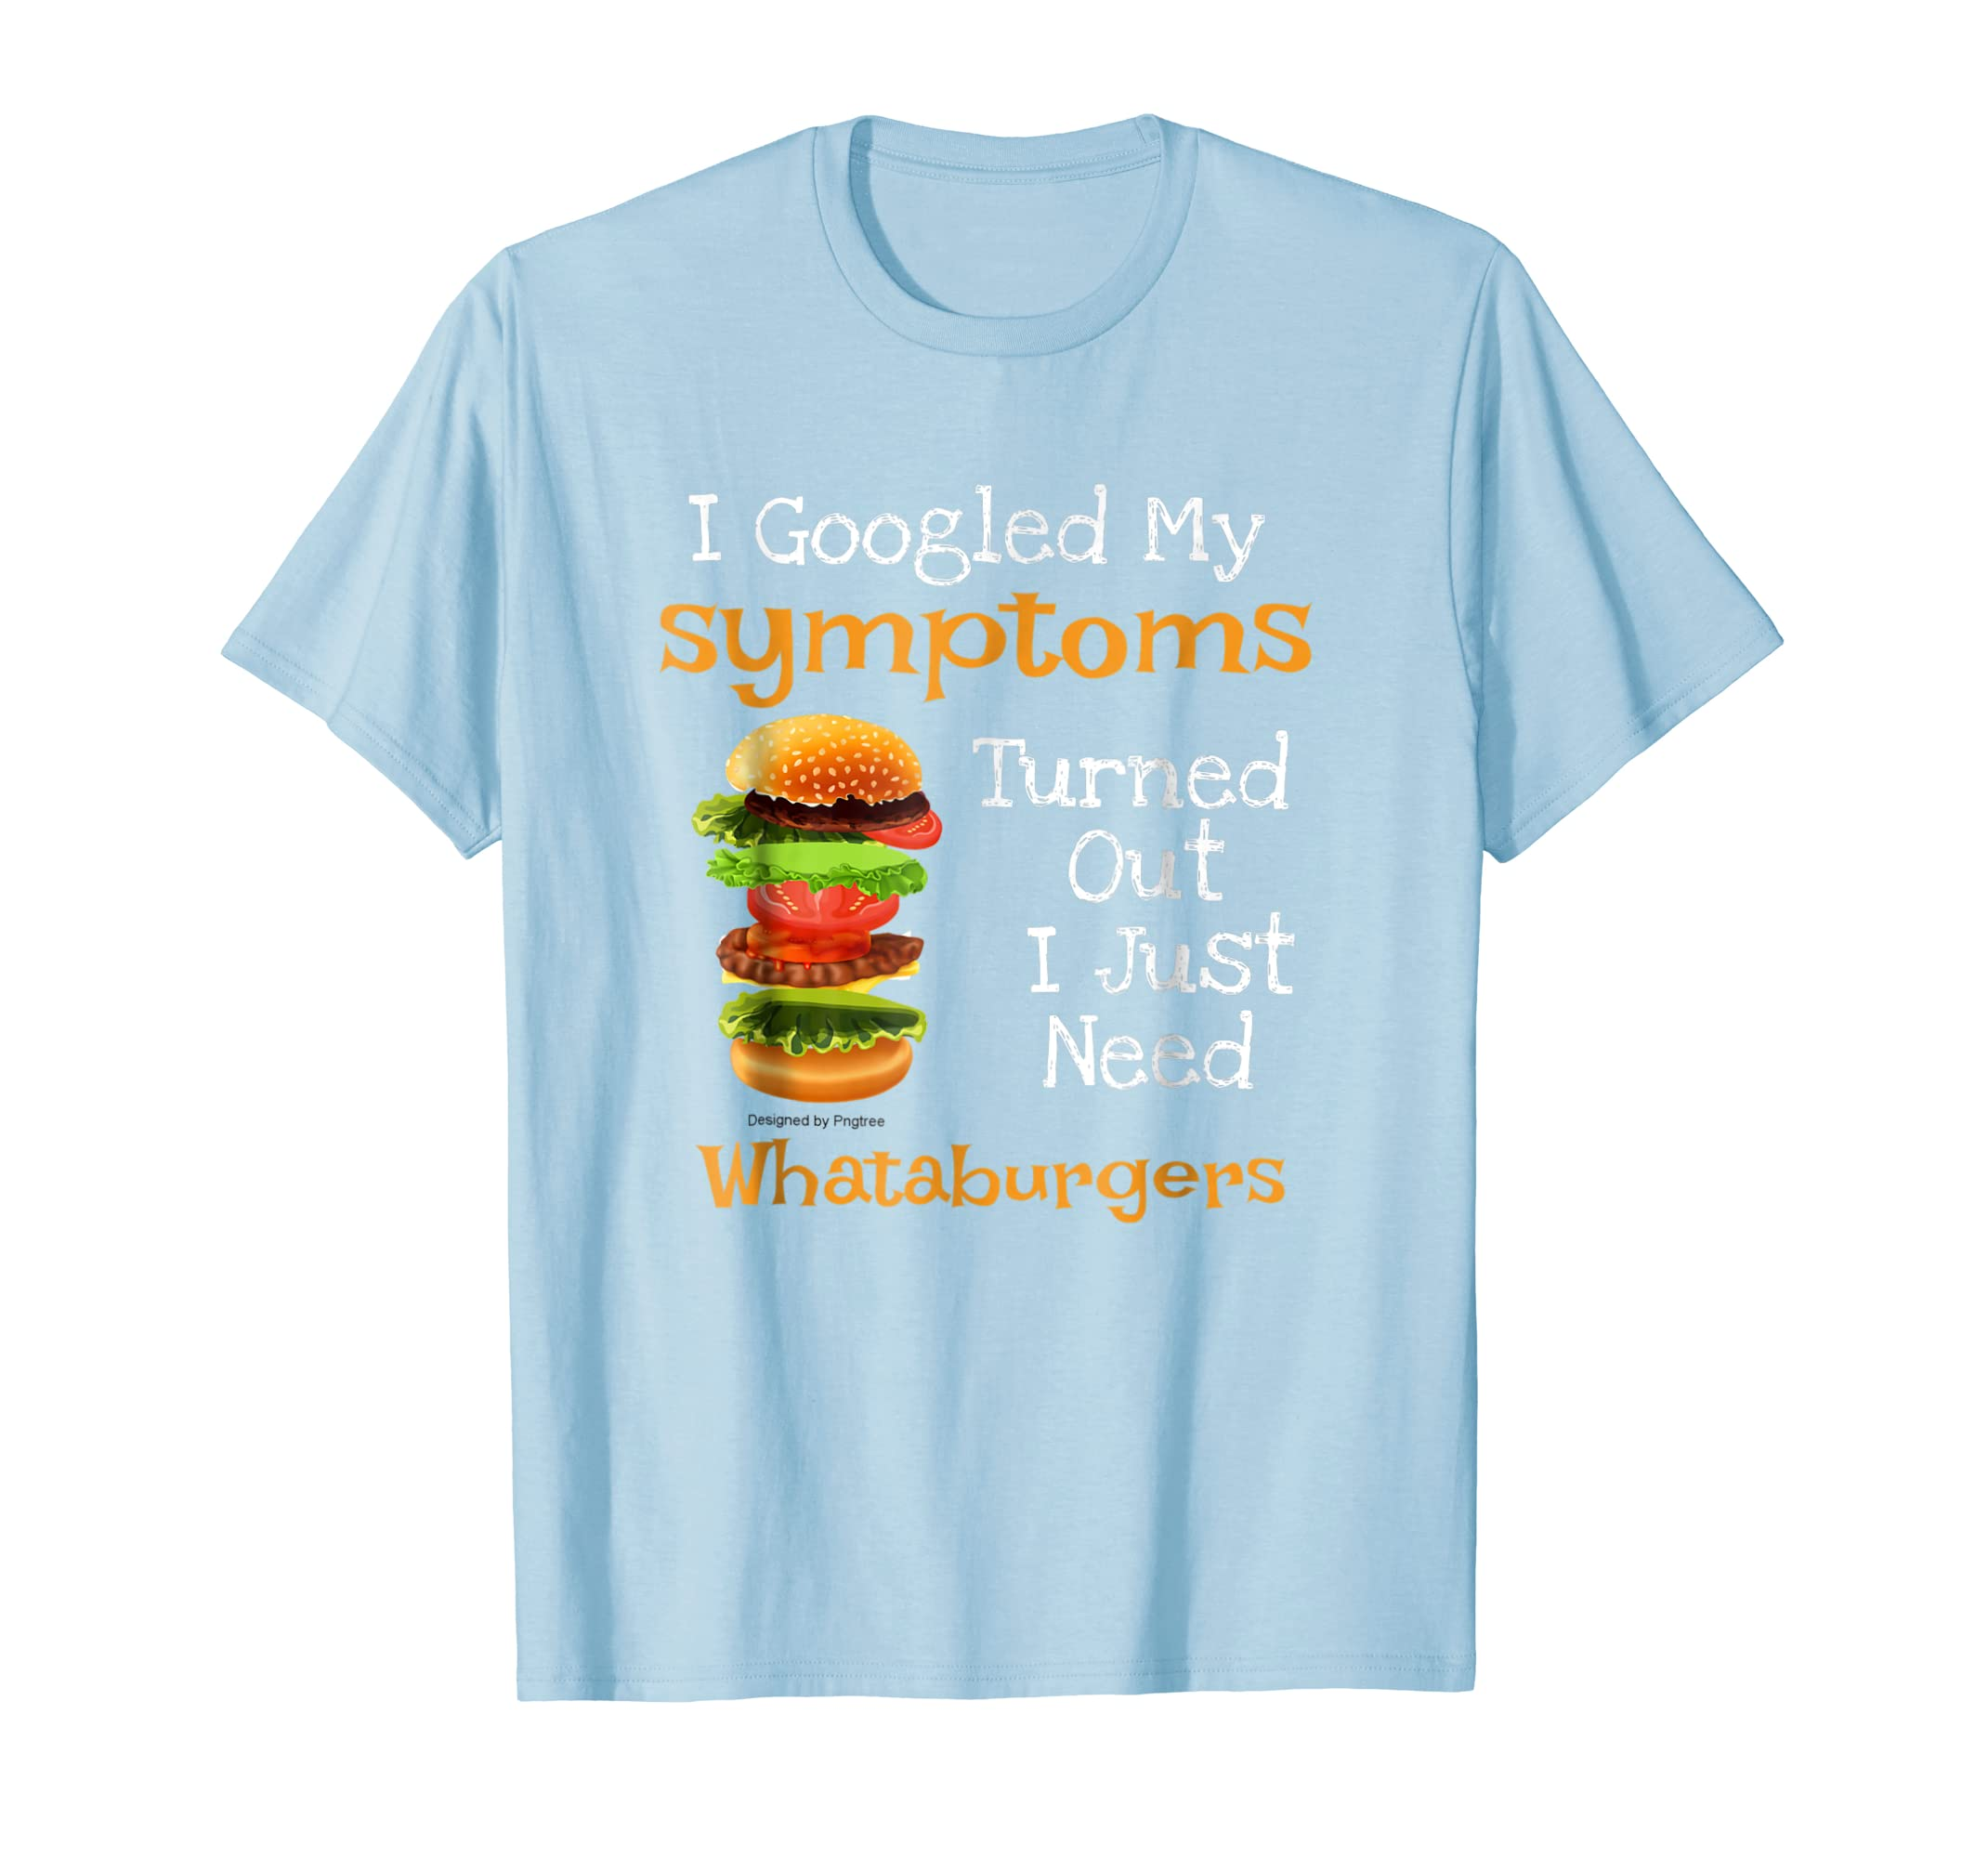 611453bf131ad I Googled My Symptoms Turned Out I Just Need Whataburgers Hoodie ...